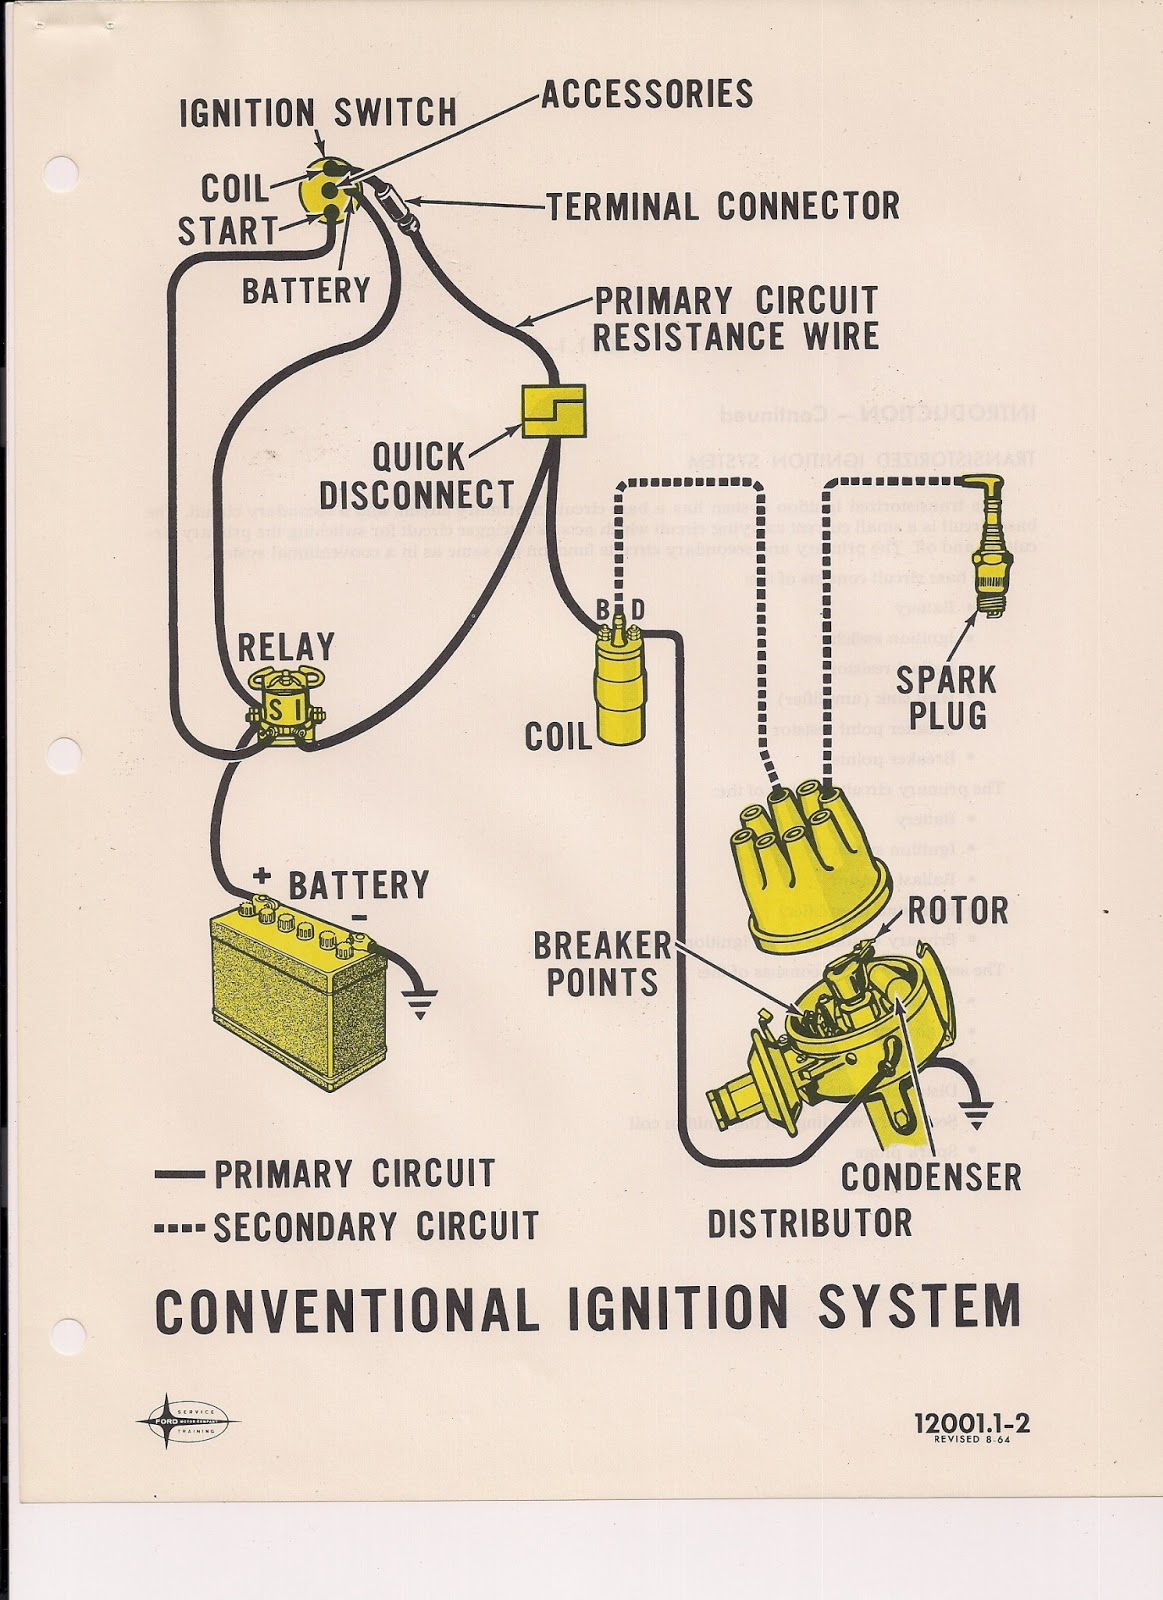 wiring diagram ignition coil the wiring diagram the care and feeding of ponies mustang ignition system 1965 and 1966 wiring diagram